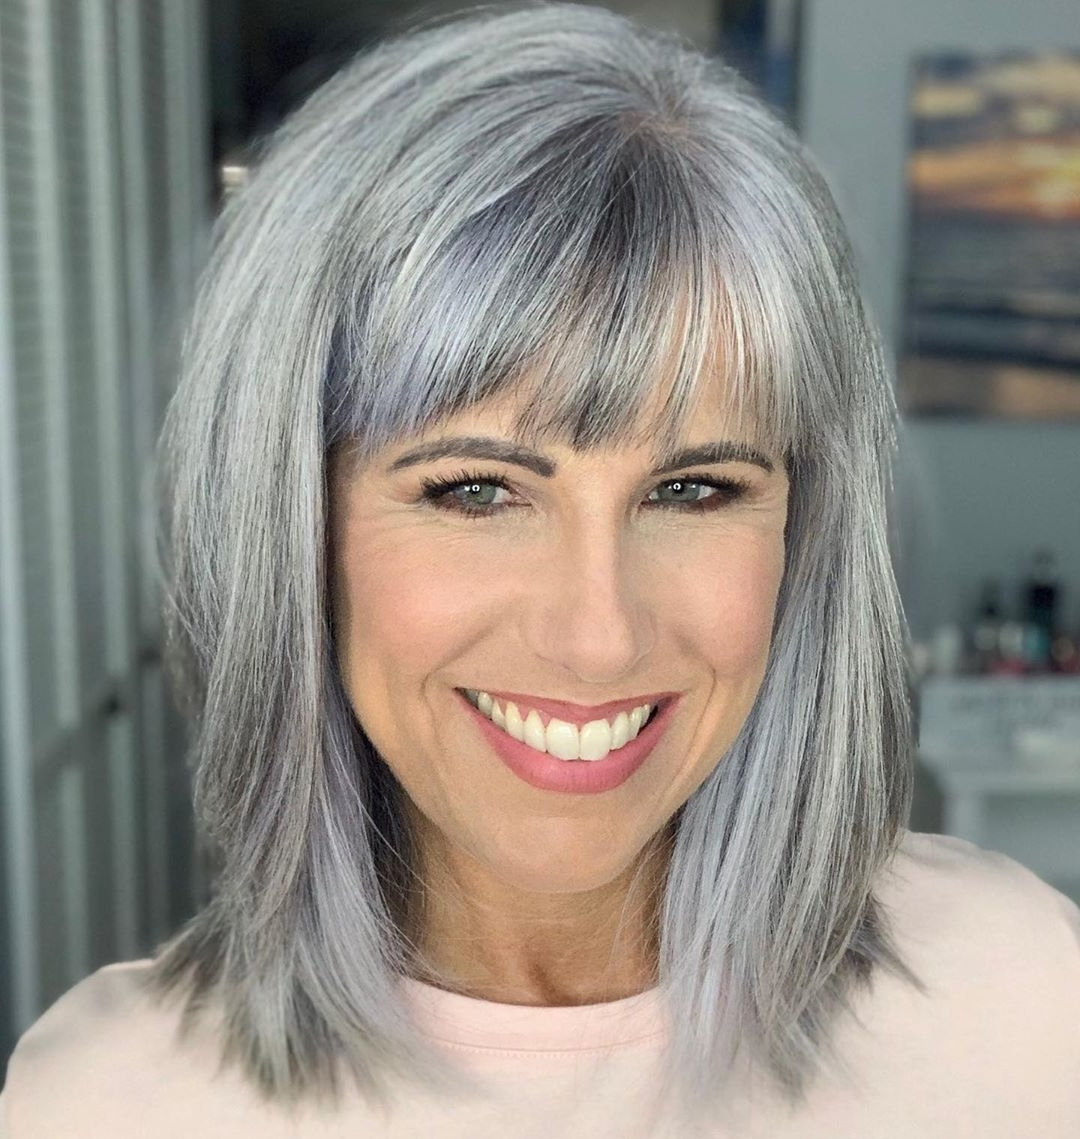 15 Youthful Medium Length Hairstyles For Women Over 50 30+ Awesome Medium Length Hairstyles For Over 50S